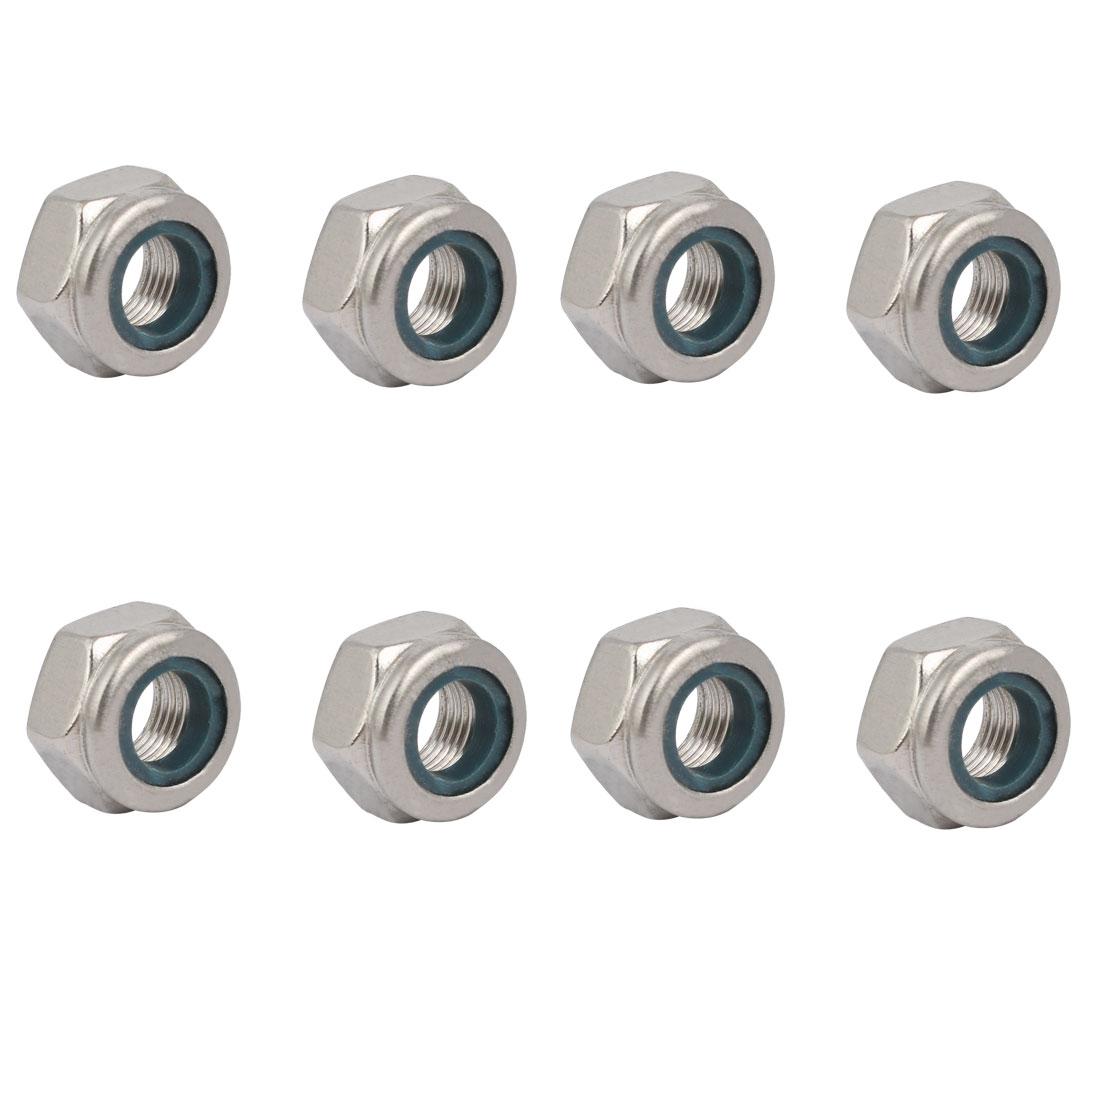 8pcs M10 x 1mm Pitch Metric Fine Thread 304 Stainless Steel Hex Lock Nuts